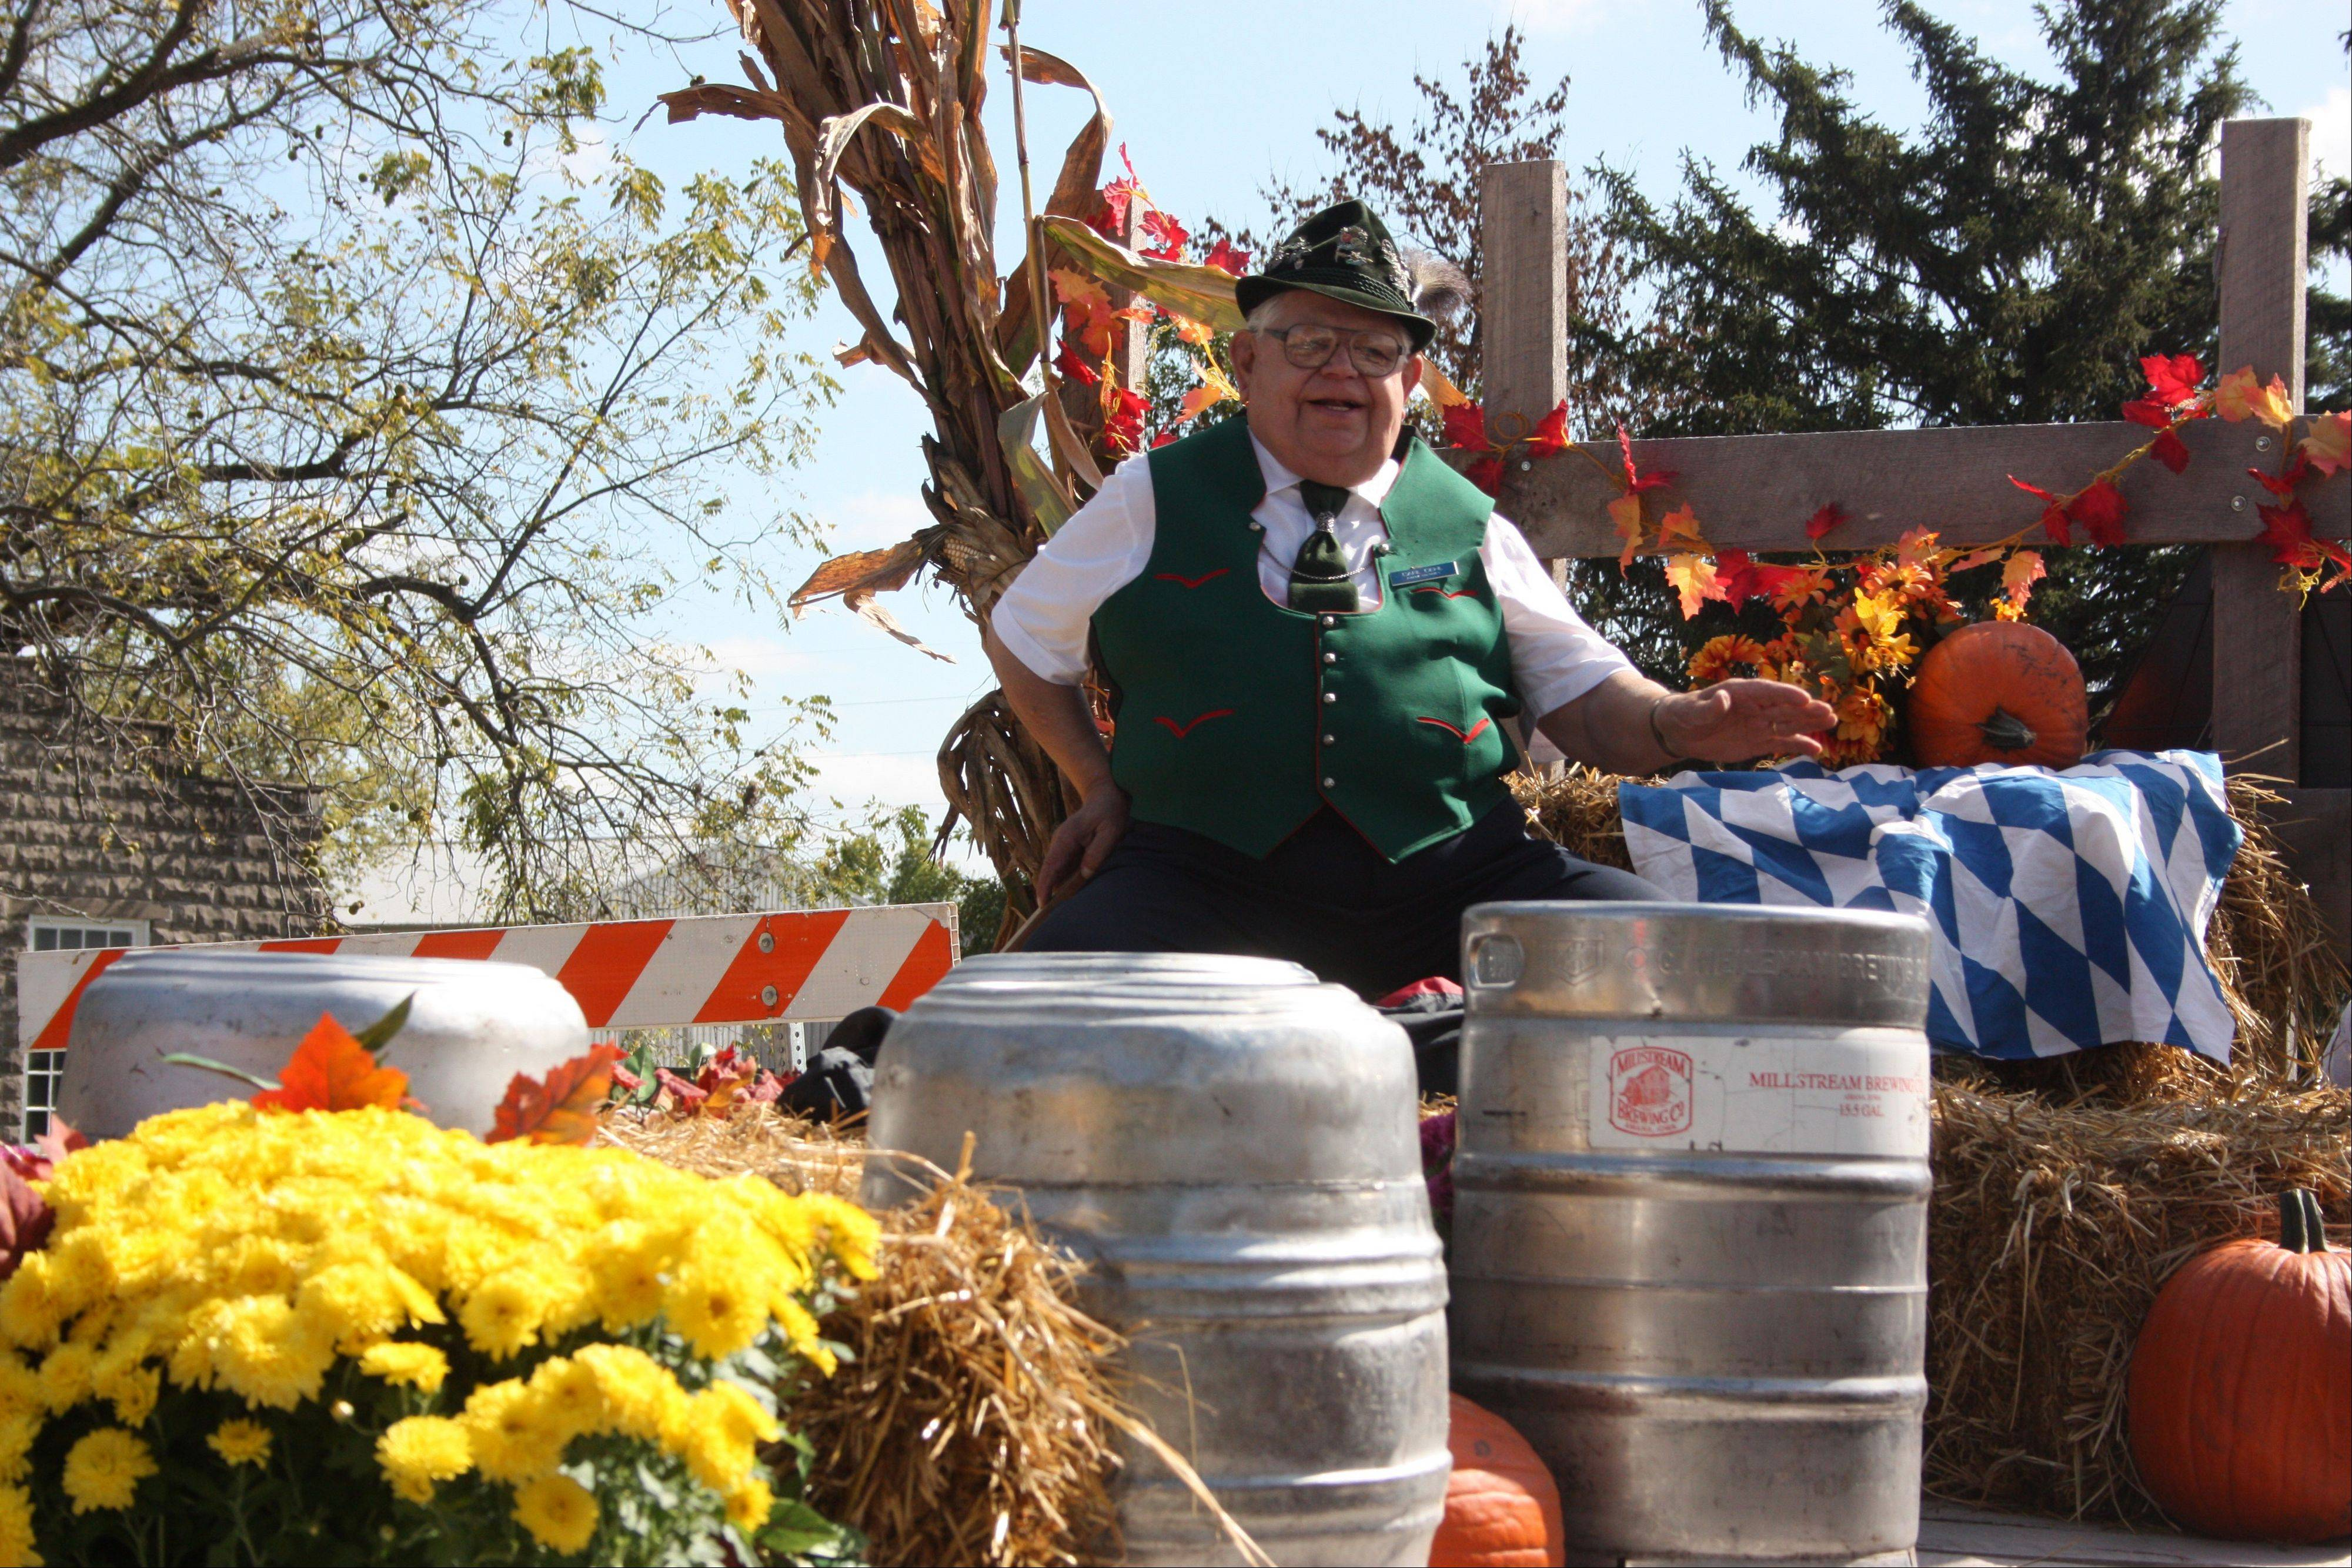 Meet the Burgermeister during Oktoberfest at the Amana Colonies village in Amana, Iowa.